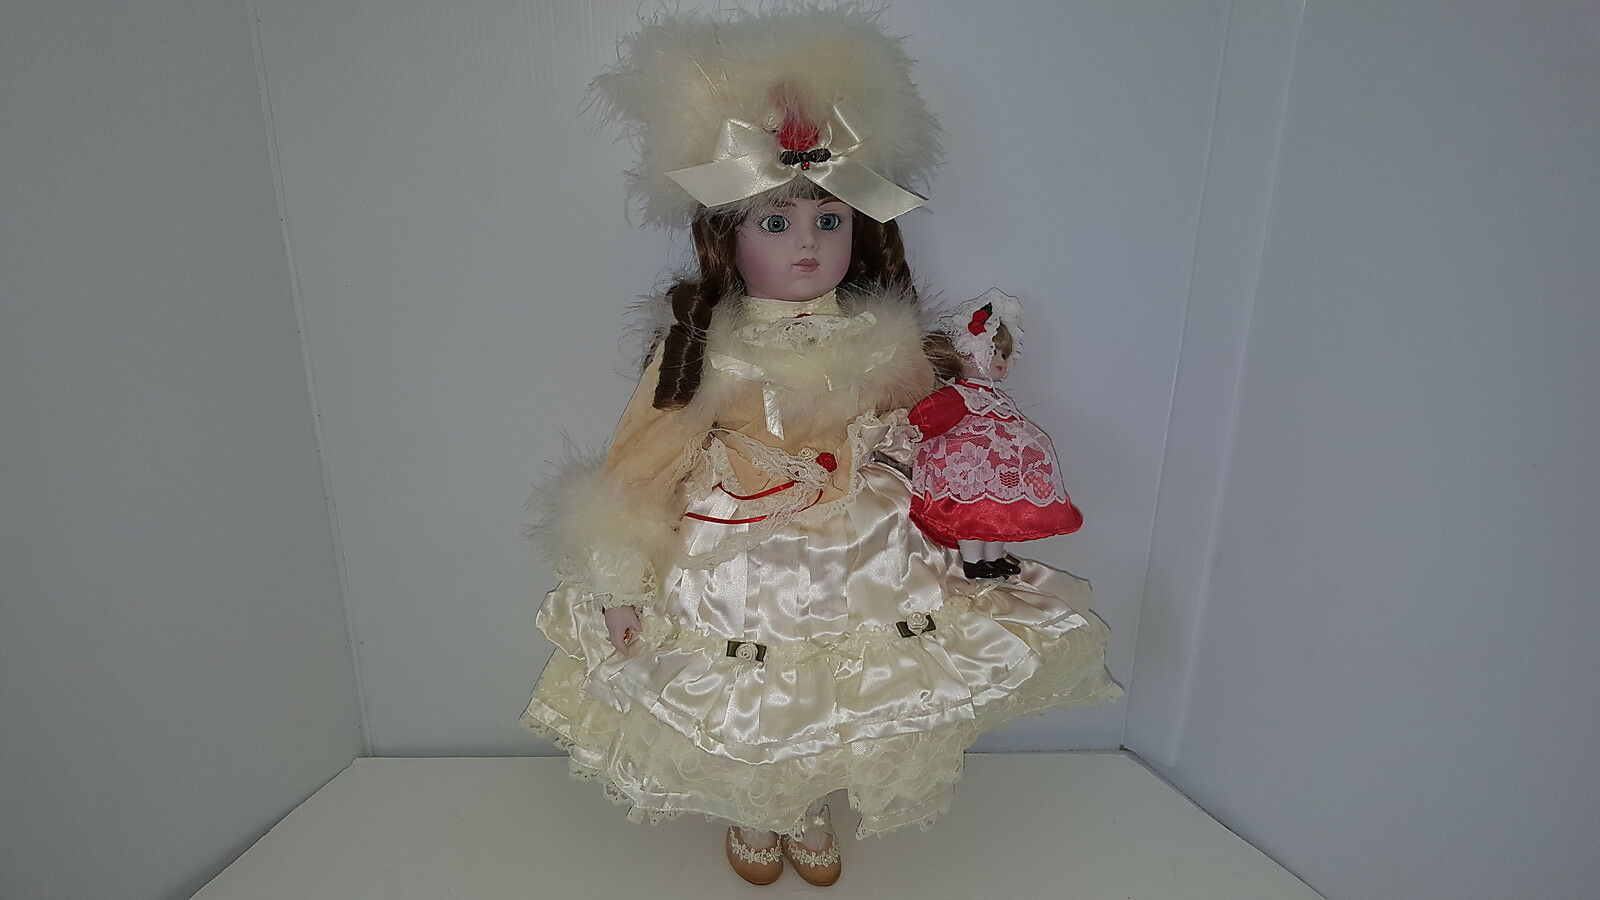 + MERRIE GORHAM CHRISTMAS EDITION BY SUSAN AIKEN 19  PORCELAIN MUSICAL DOLL 1987